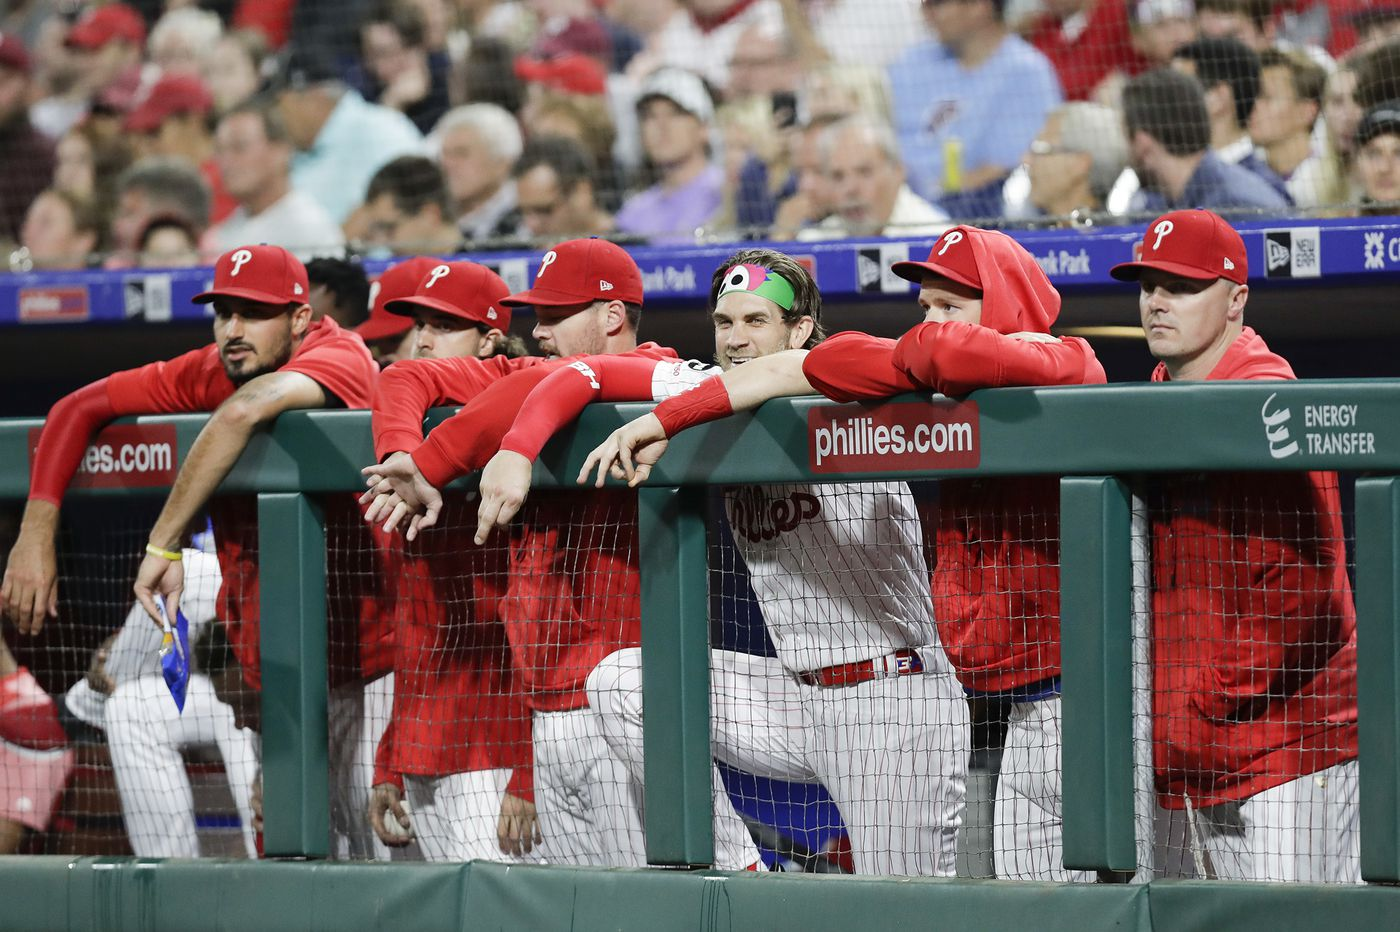 What you need to know about the Phillies, MLB, and watching the 2020 baseball season